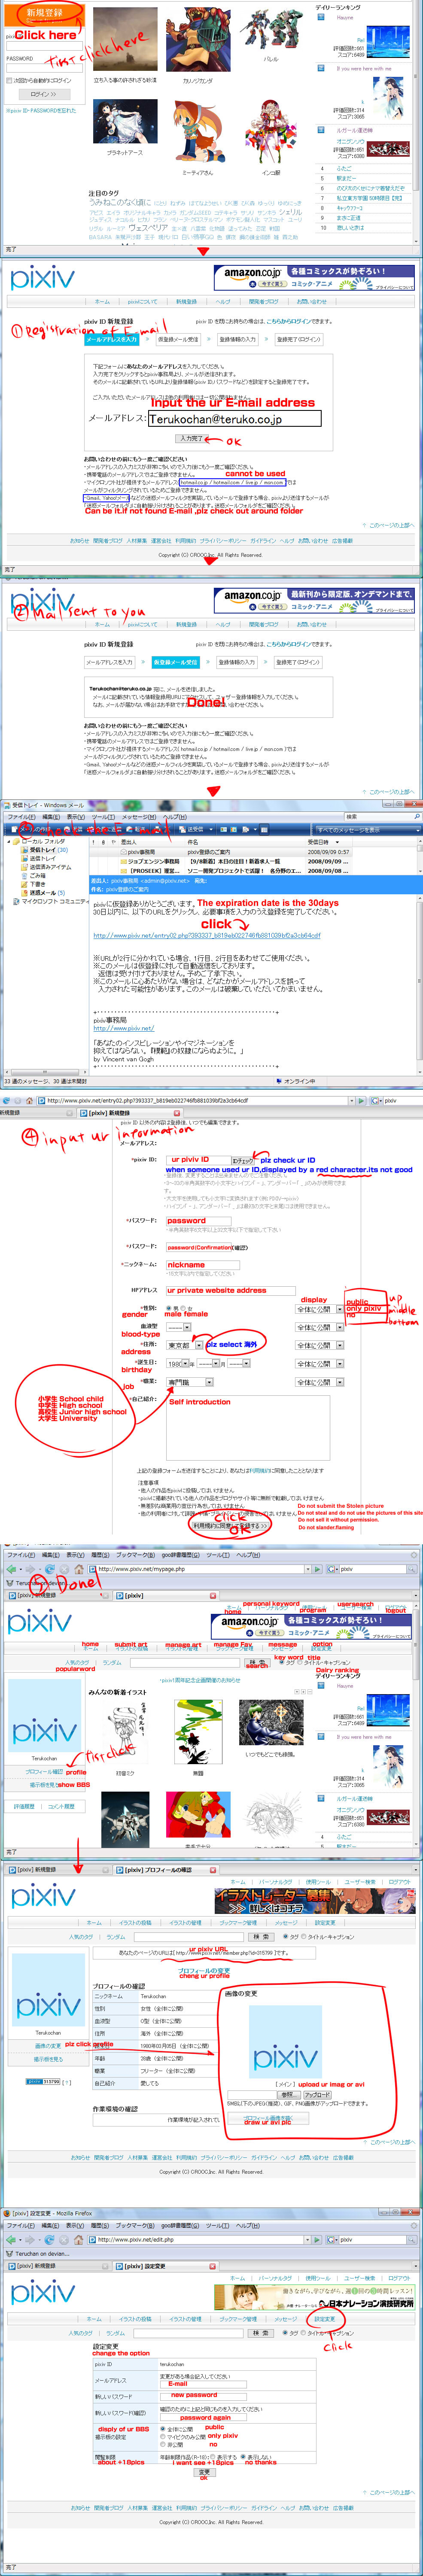 How to Registration pixiv